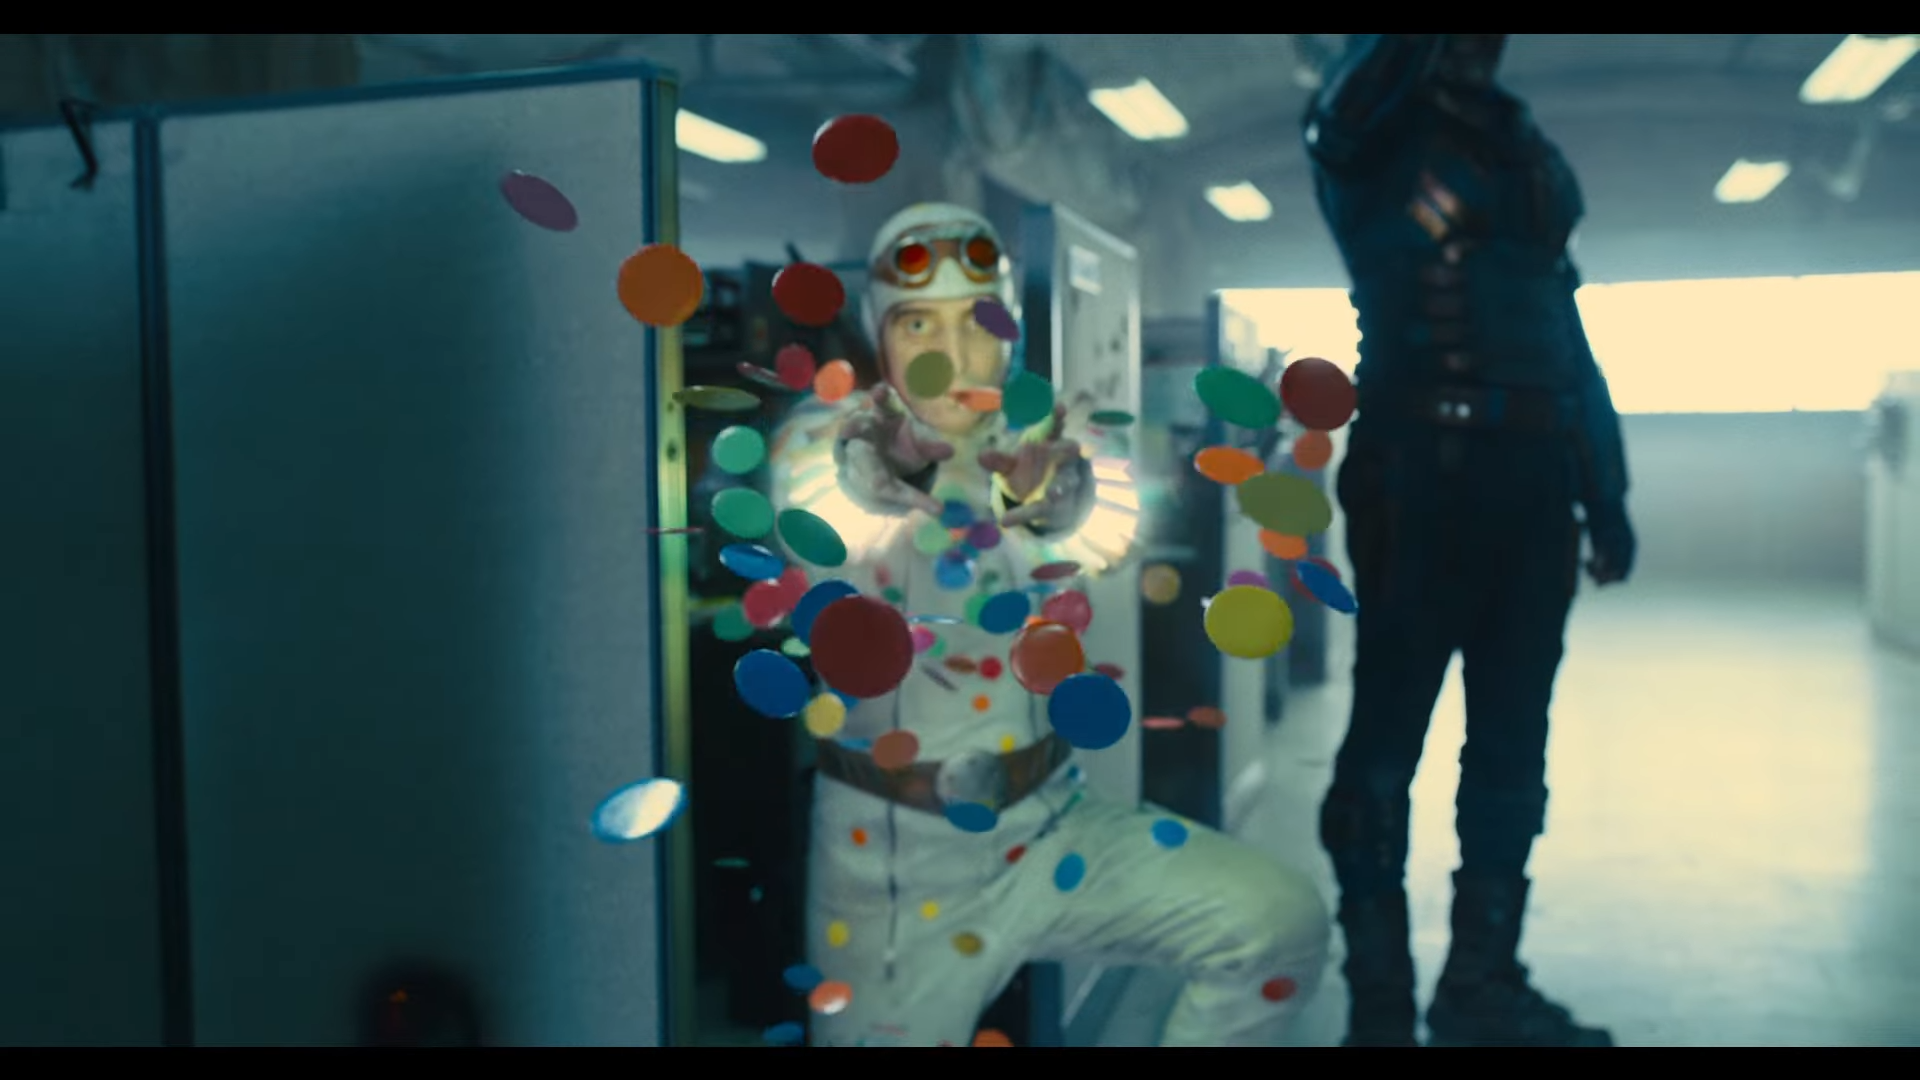 THE-SUICIDE-SQUAD-Rebellion-Trailer-1-16-screenshot-29